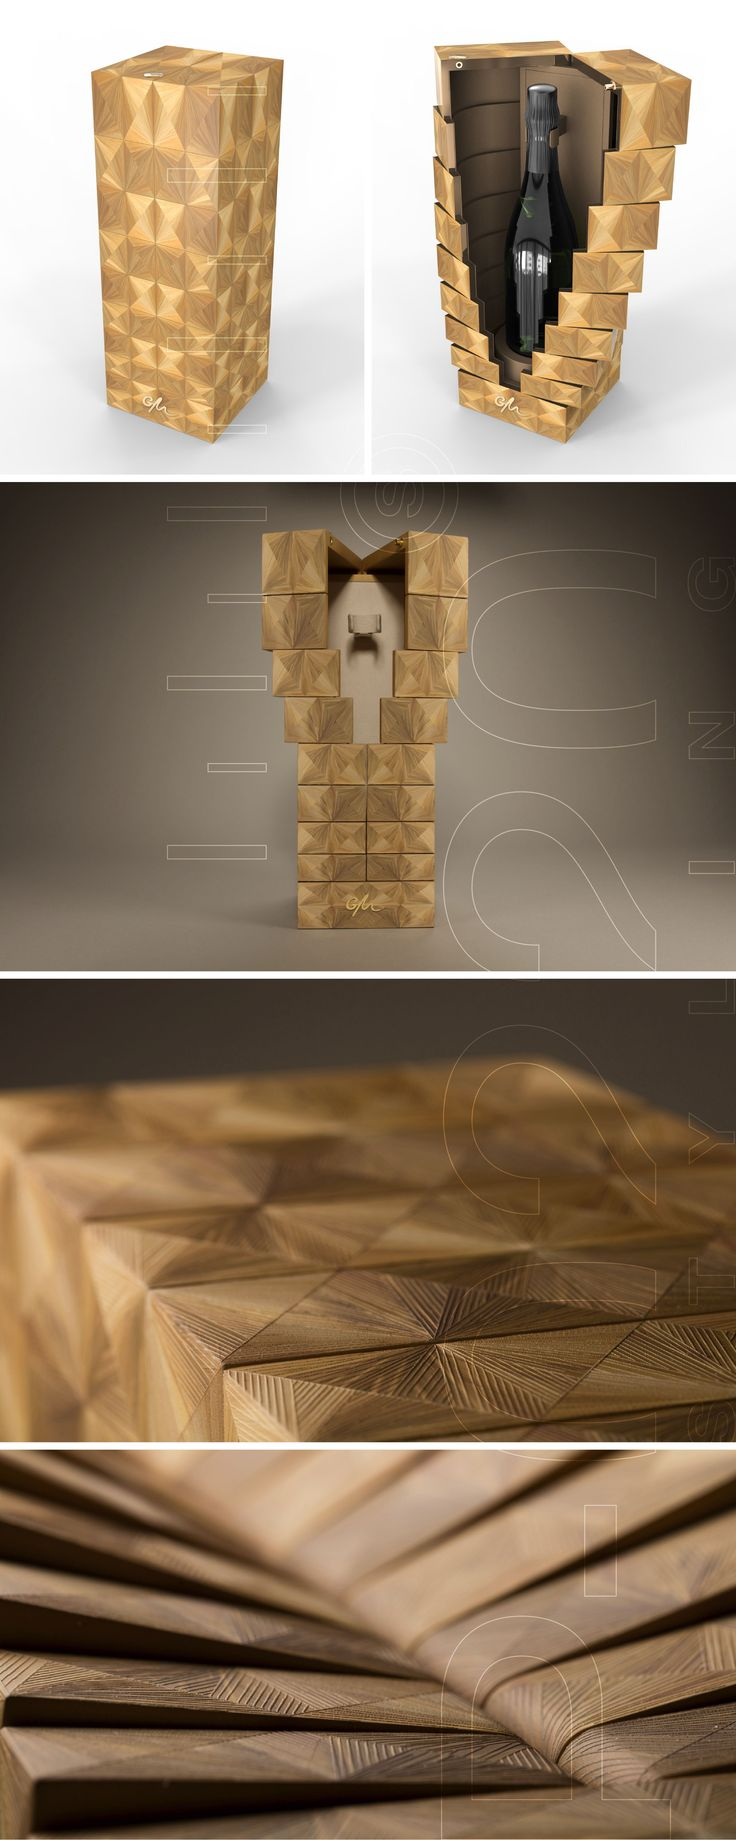 100% PACKAGING & DESIGN SA | Écrin Champagne / Champagne Box designed by Pozzo di Borgo Styling. Fabriqué par / Made by RS Agencement Steiner, Gainerie Moderne, Huguenin-Sandoz, Cosmo Packaging.